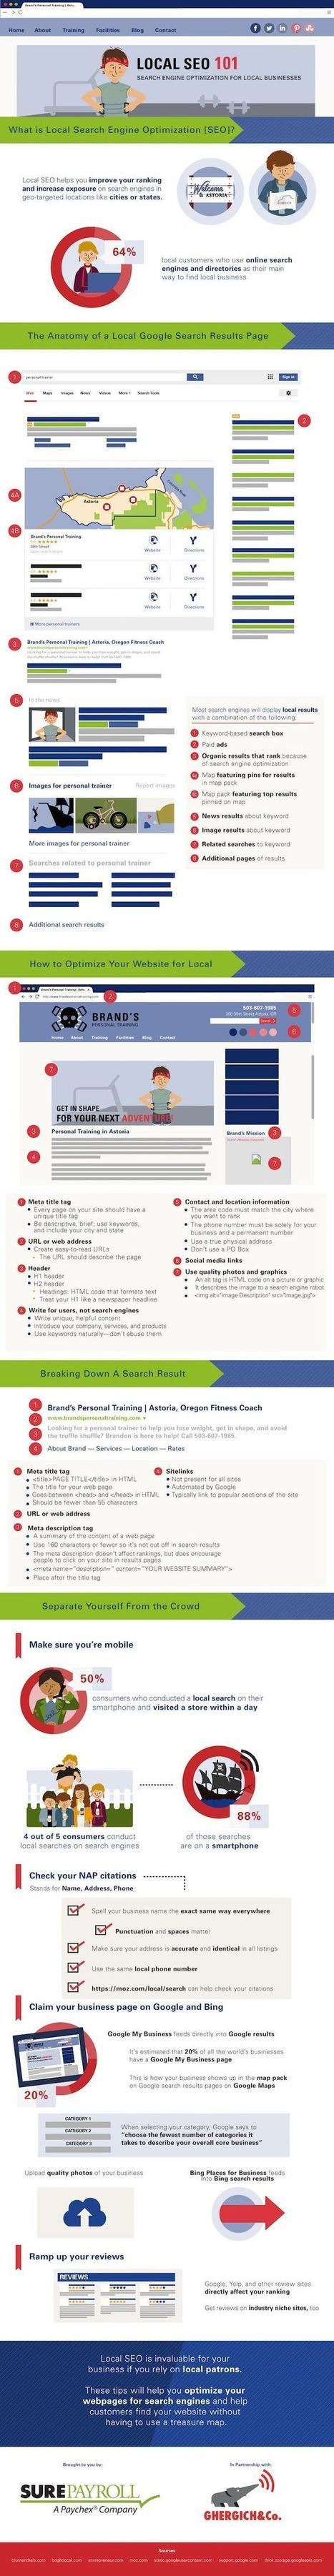 Step-by-Step Guide to Your Local SEO Success (Infographic) | Easy Media Network | Scoop.it